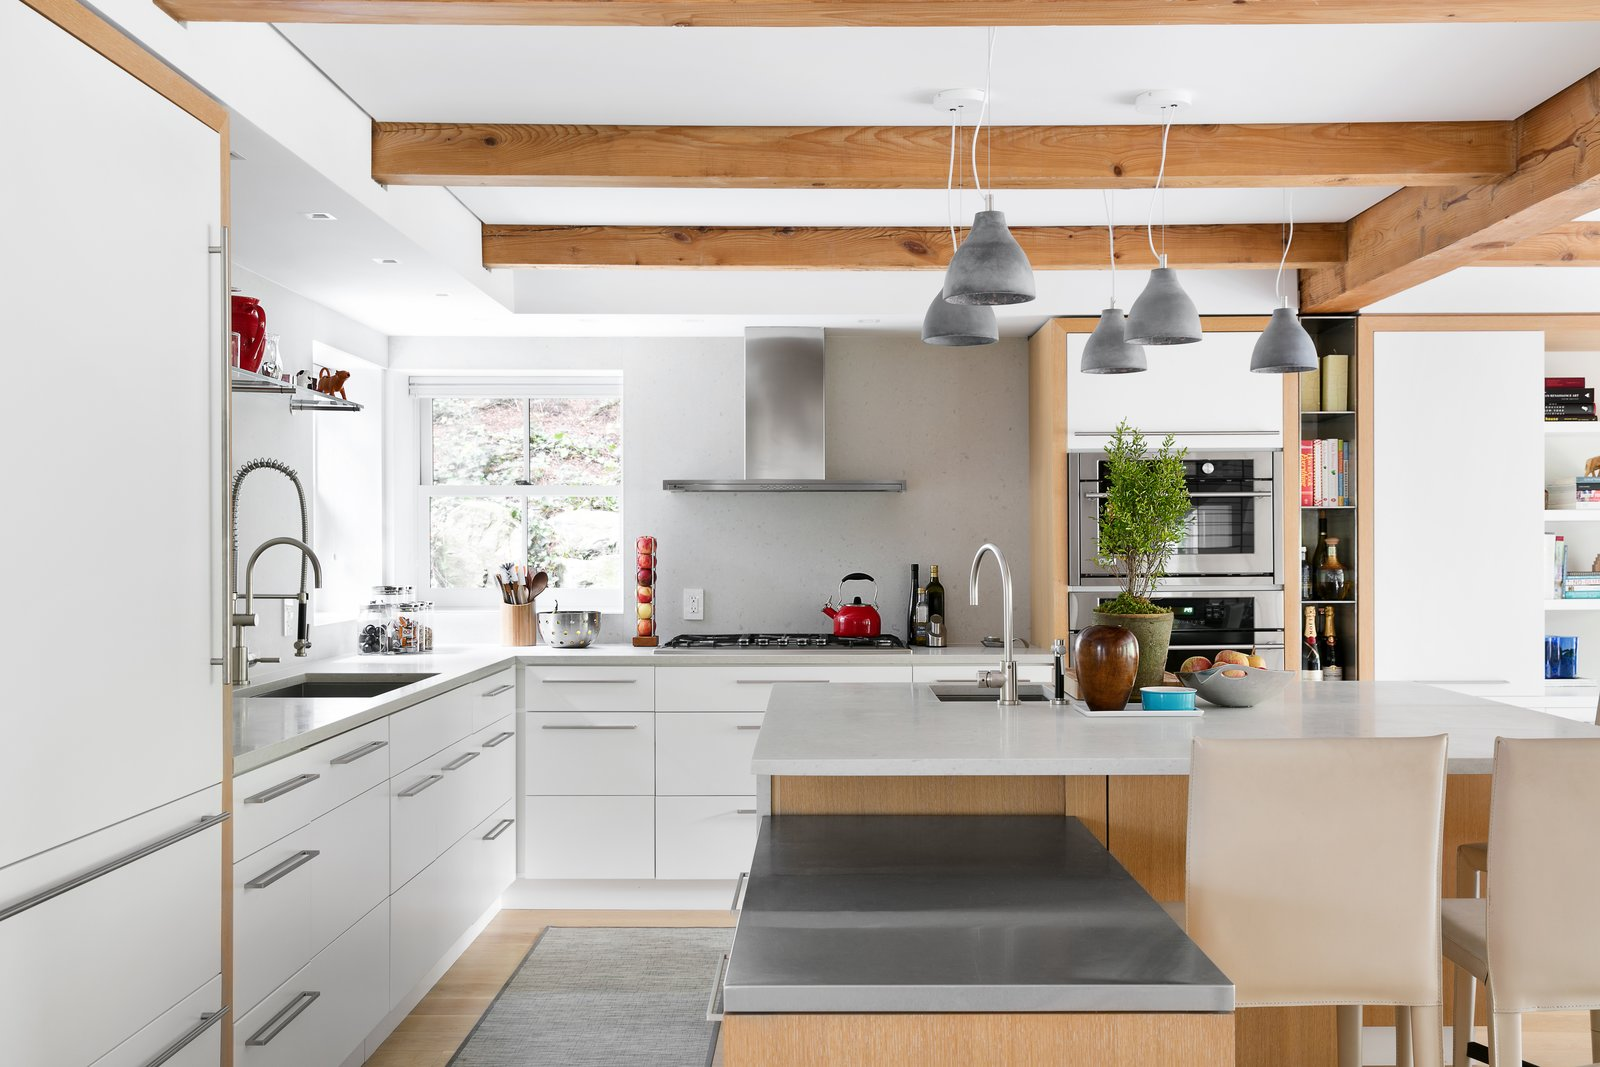 Let There Be Light: 4 Types of Kitchen Illumination - Dwell